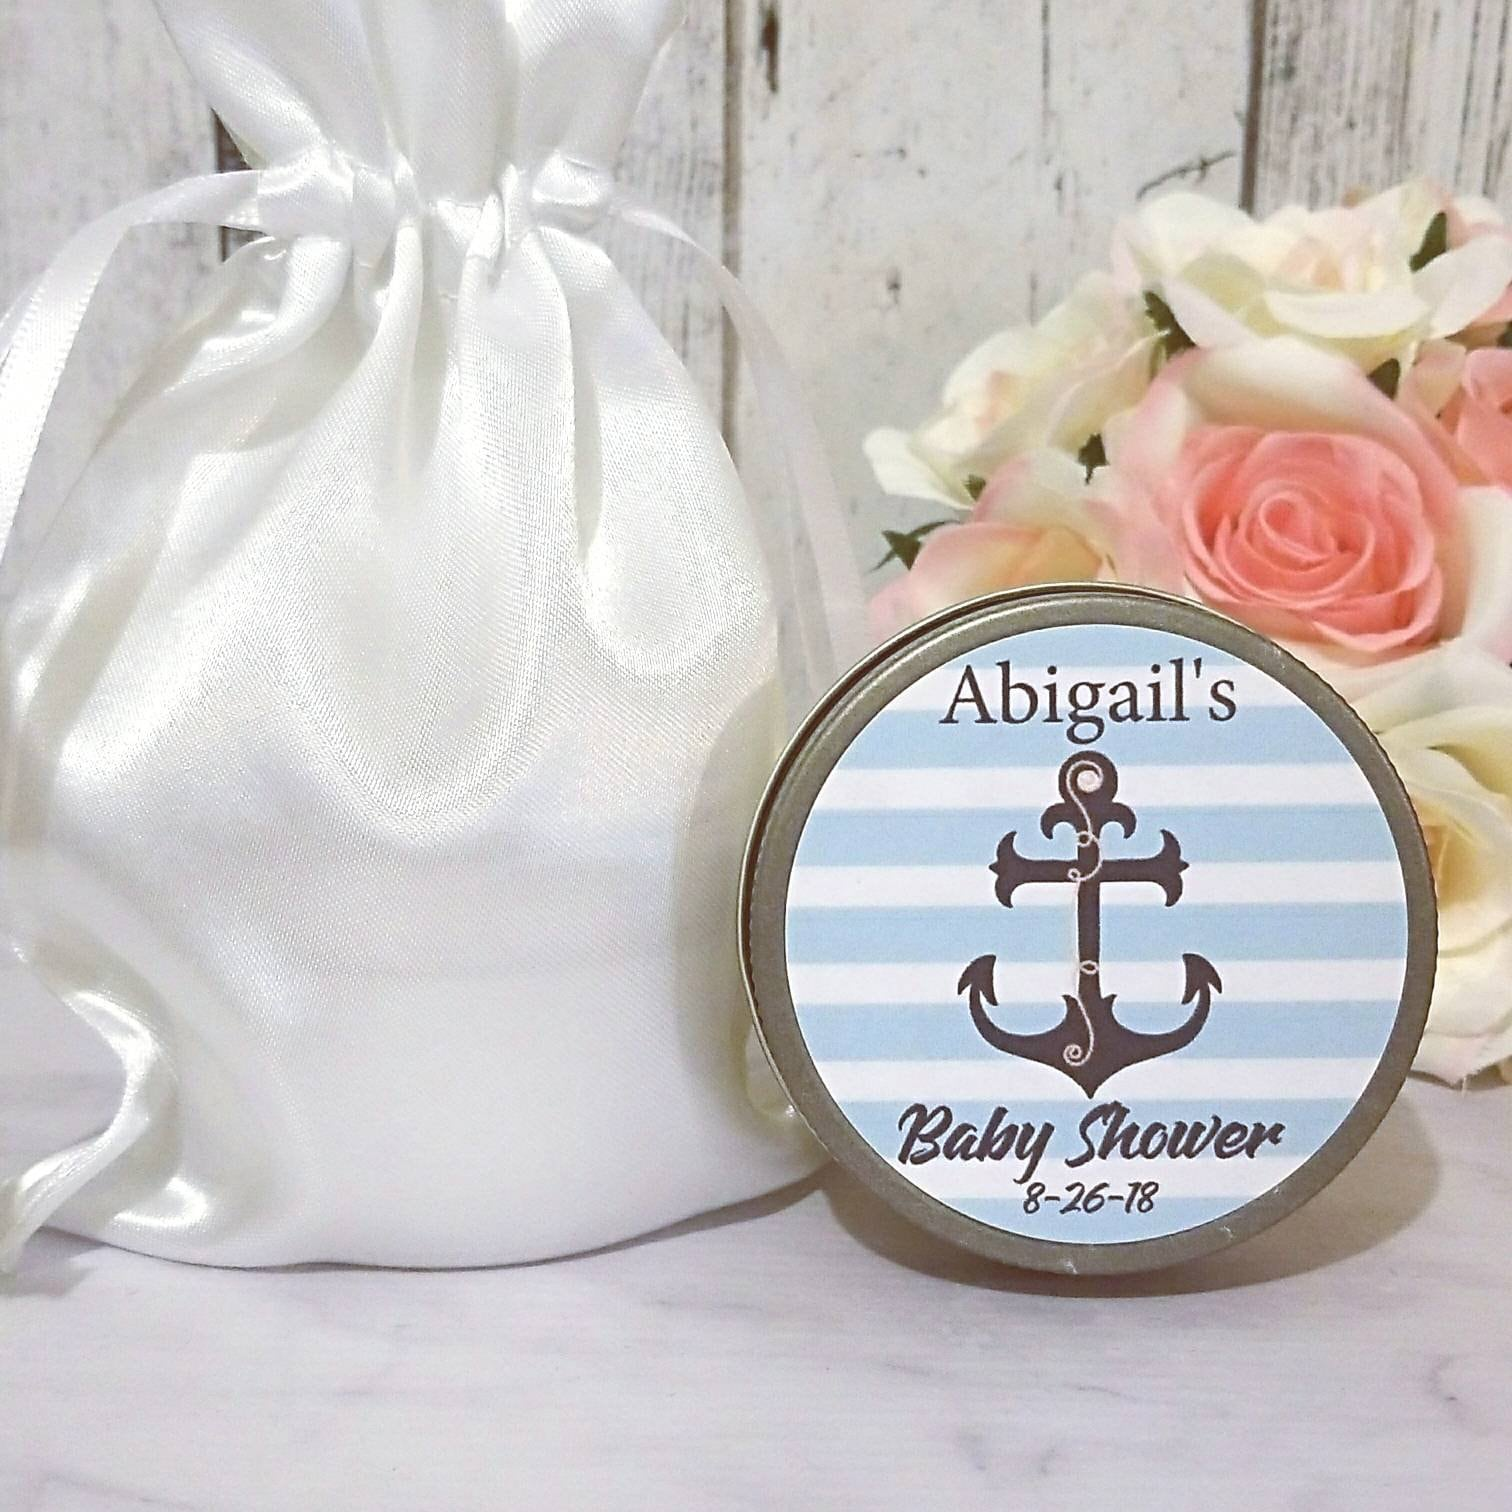 Baby Shower Favors Nautical Baby Shower Favors Baby Shower